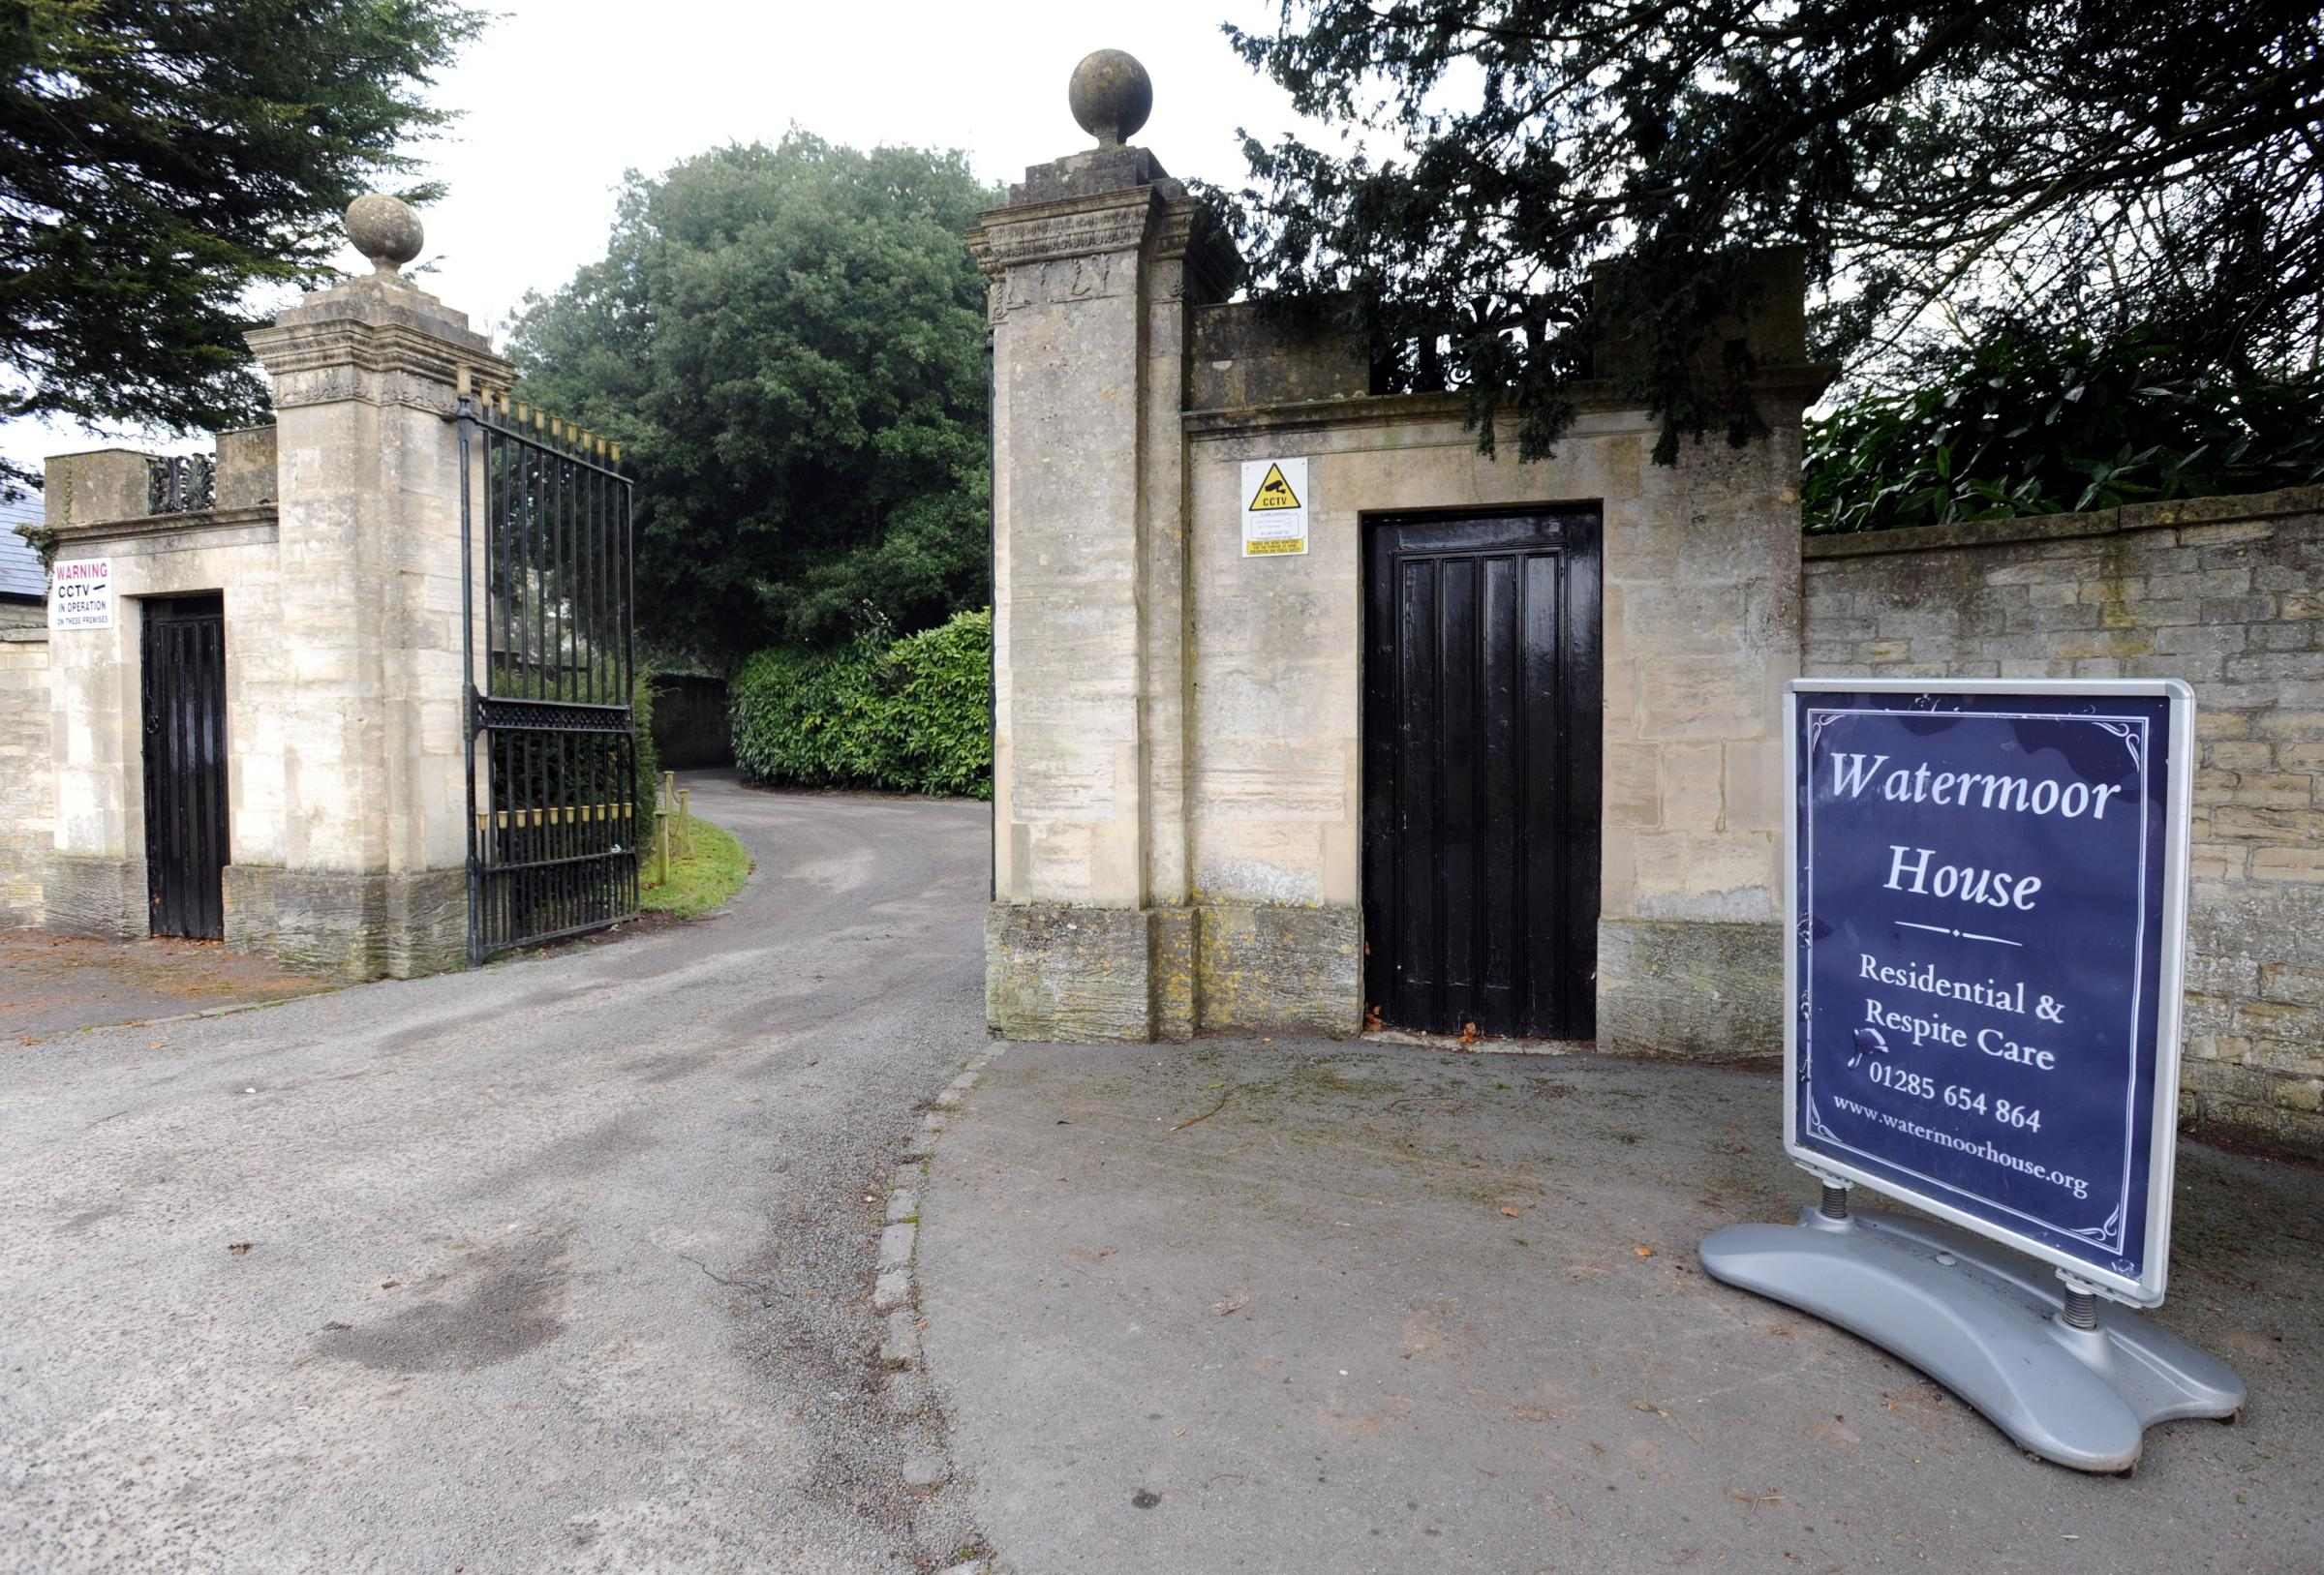 Watermoor House Must Be Restored Back To Efficiency Says Residents Daughter After Damning Report